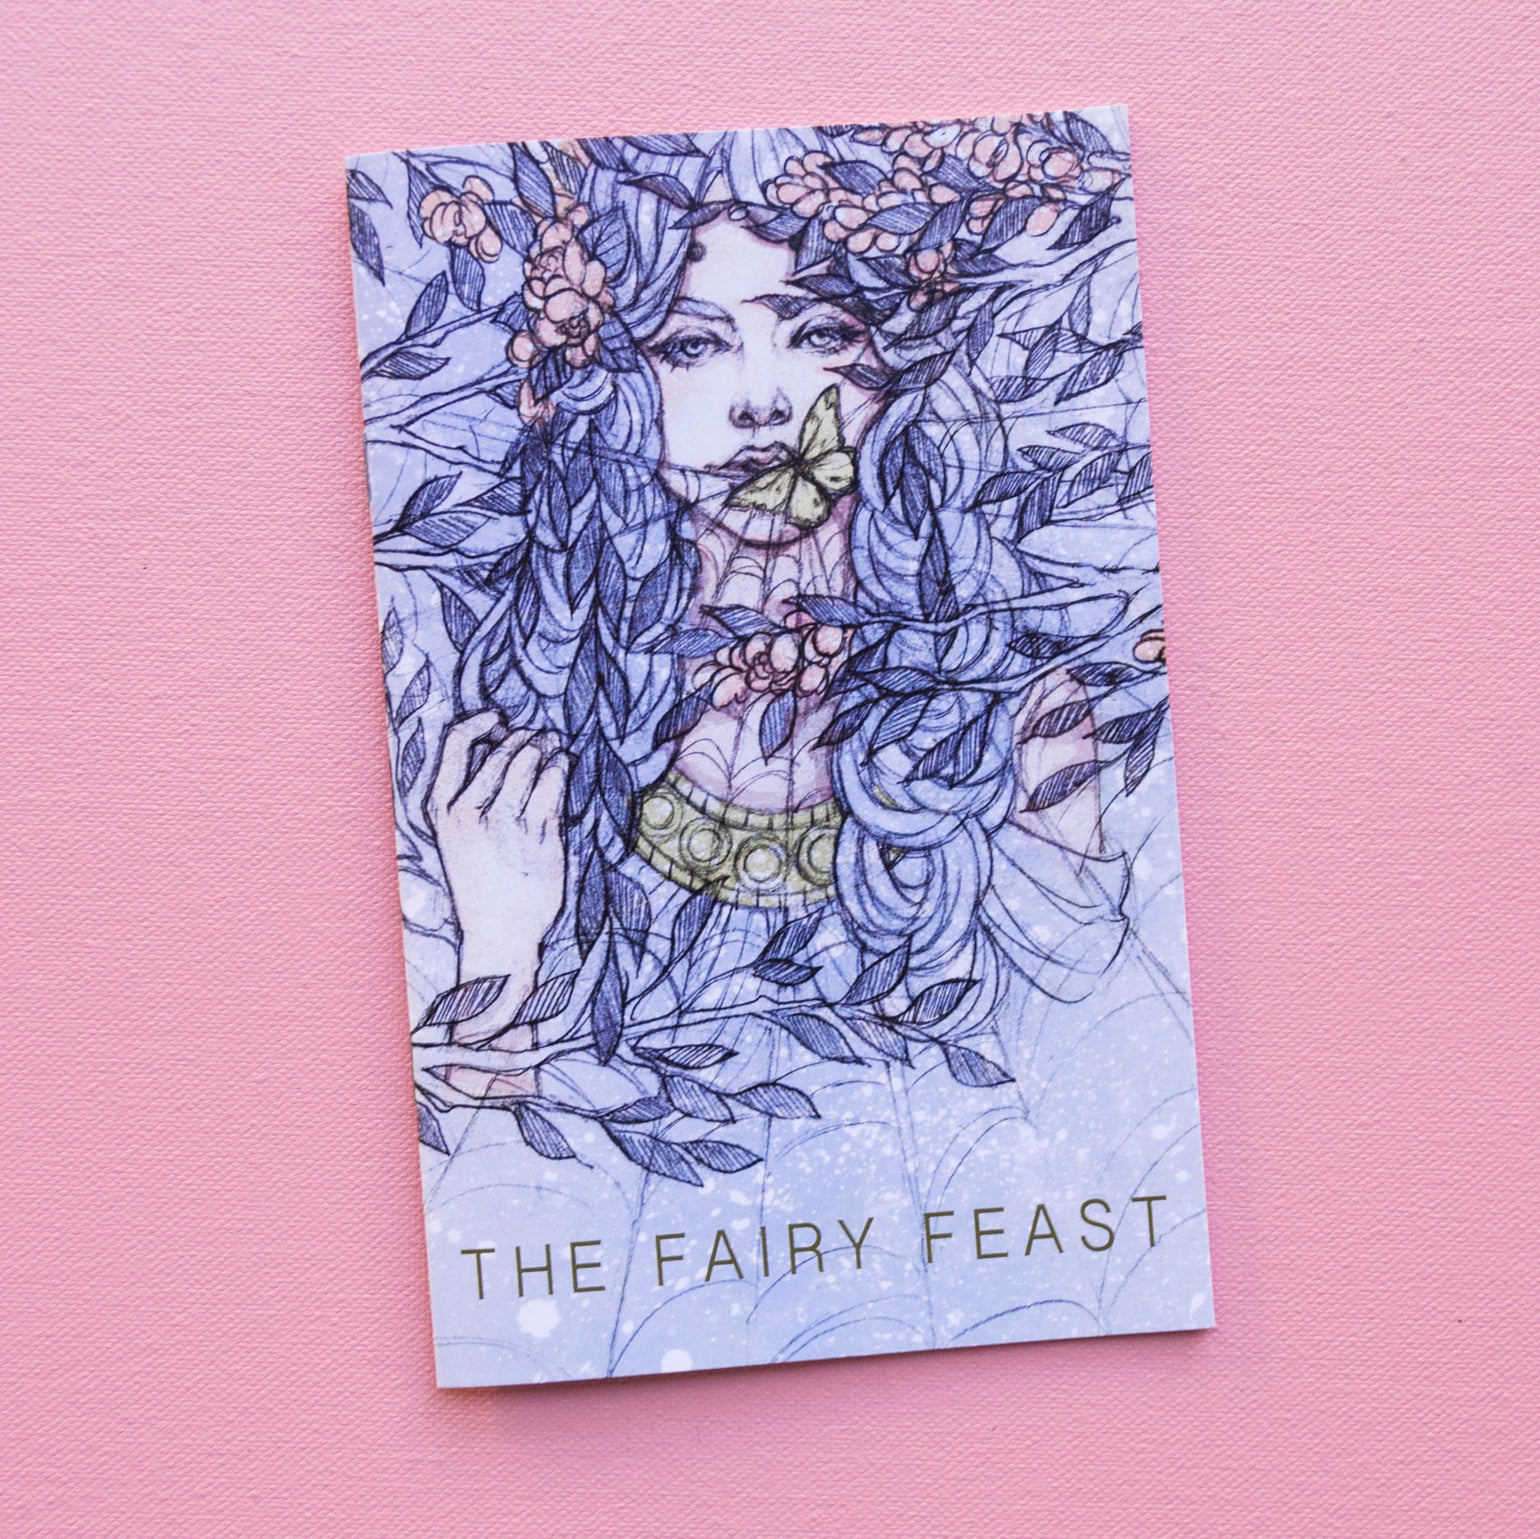 Image of The Fairy Feast Zine